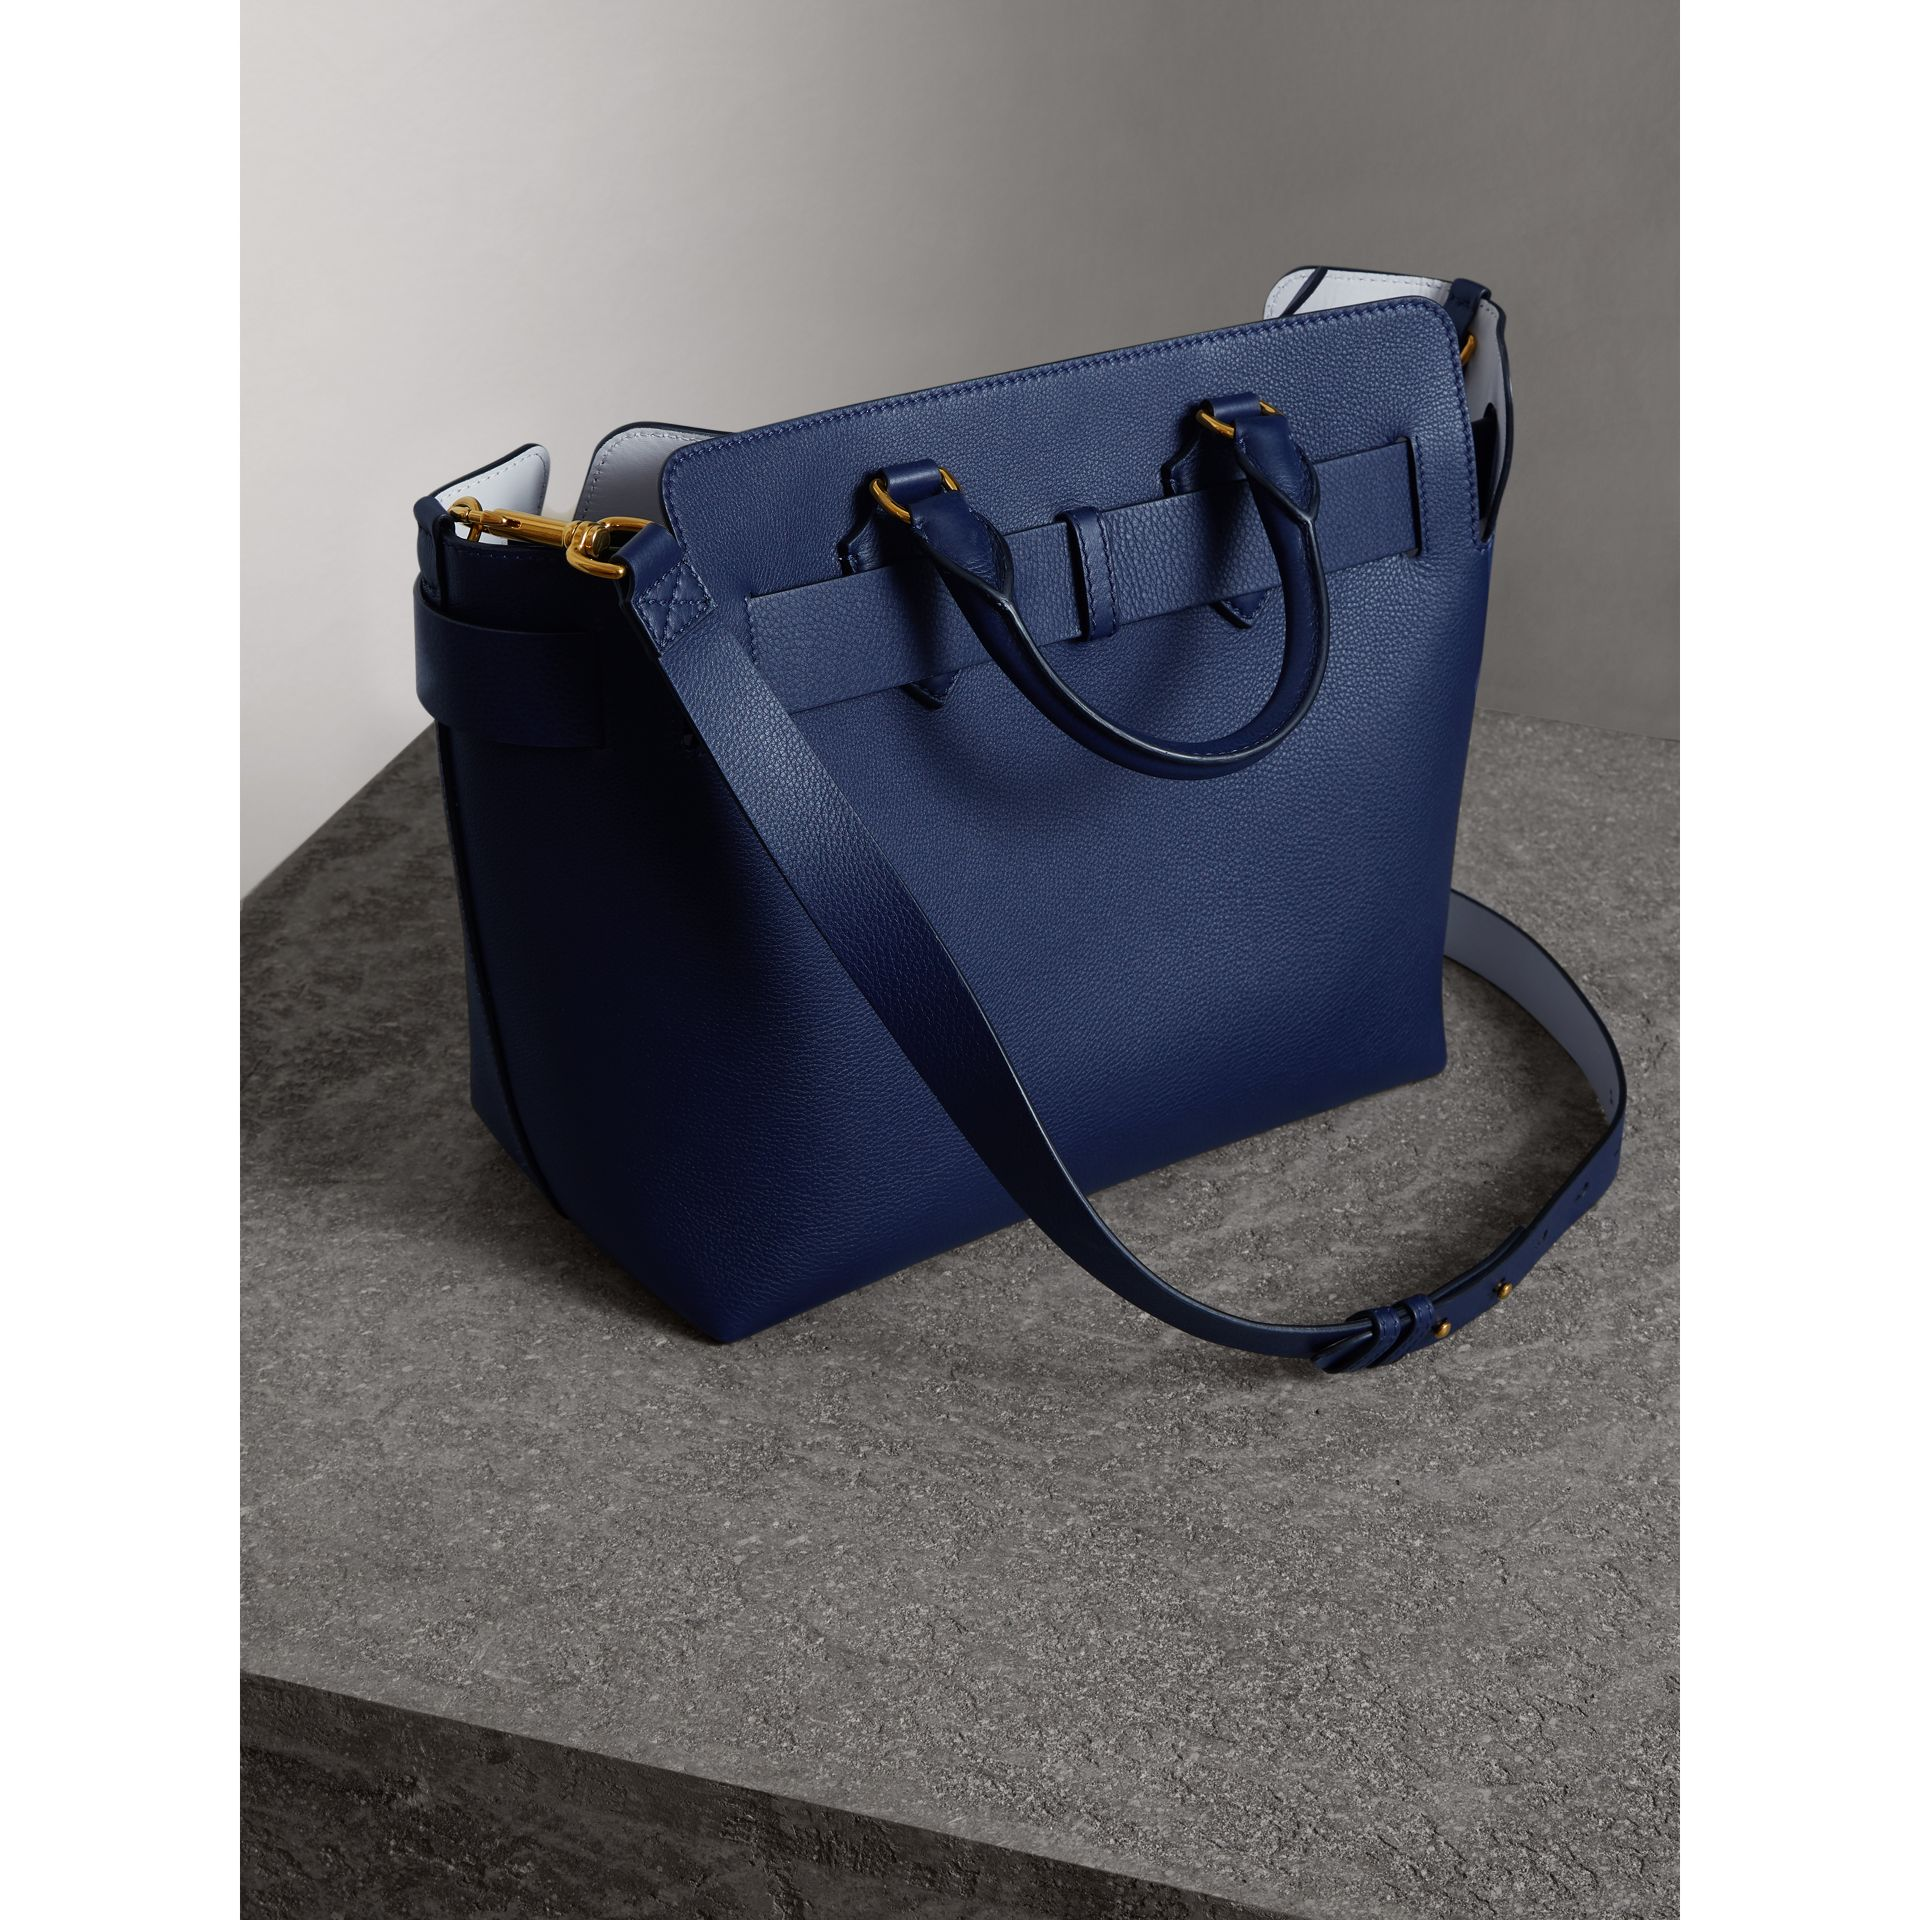 Sac The Belt moyen en cuir (Bleu Régence) - Femme | Burberry Canada - photo de la galerie 4